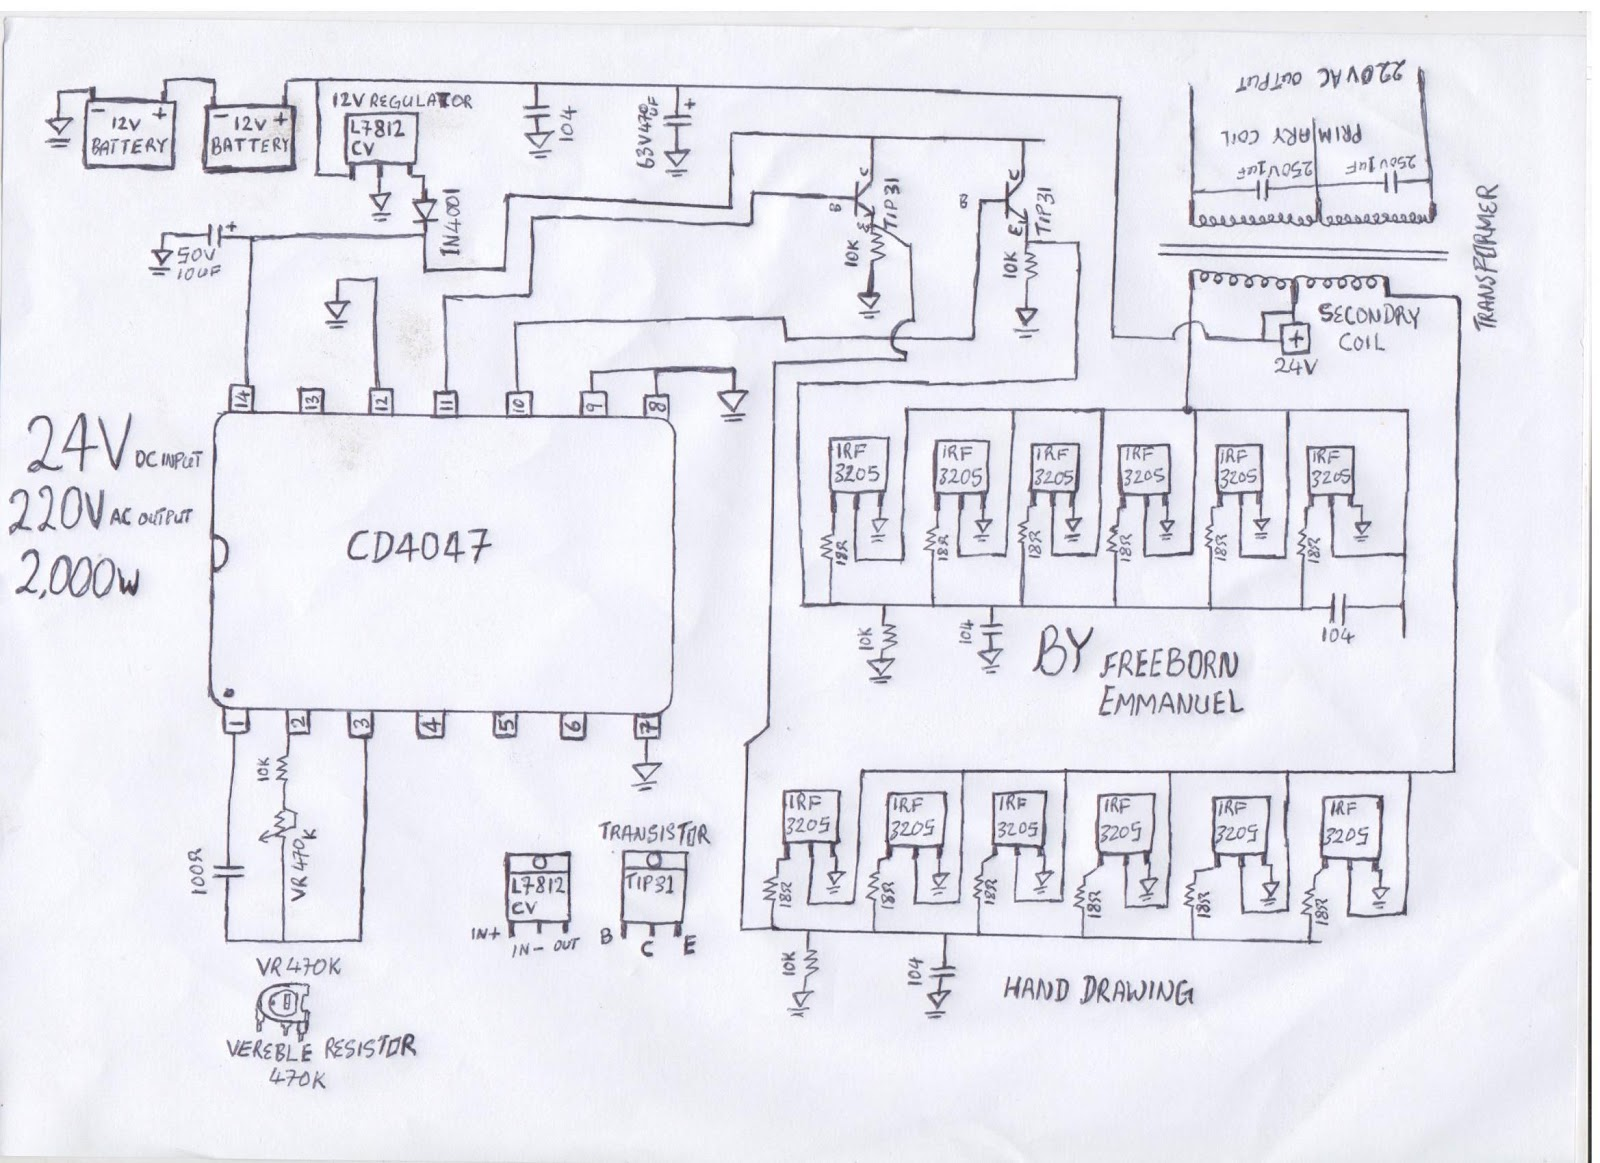 Inverter Circuit Page 4 Power Supply Circuits Sine Wave Design Modified Code For How To Build A 2kva Diagram